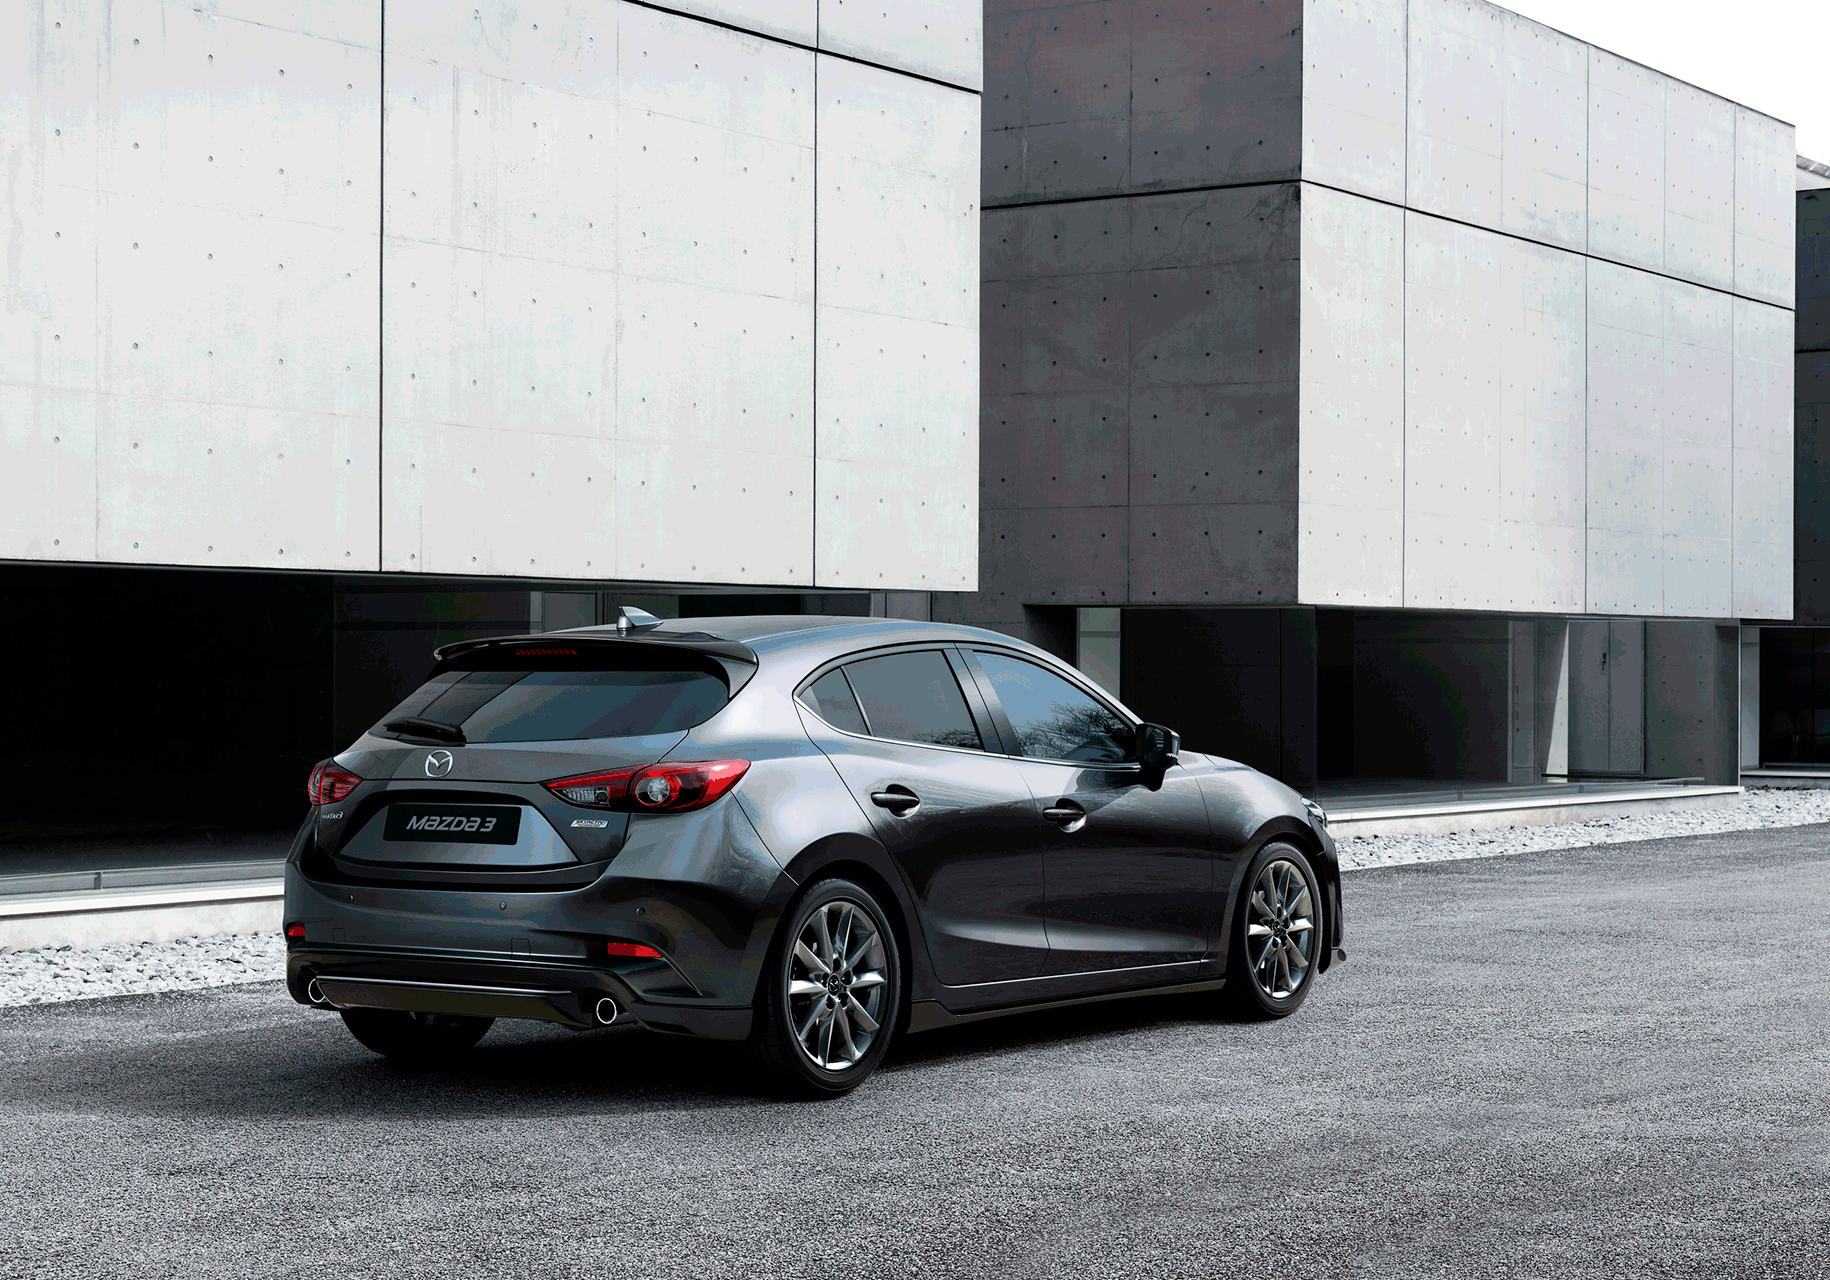 Mazda3_16CYIPM_CUT15_MME_GER_HIGH_5HB_SH_AT_MACHINE_GREY_png